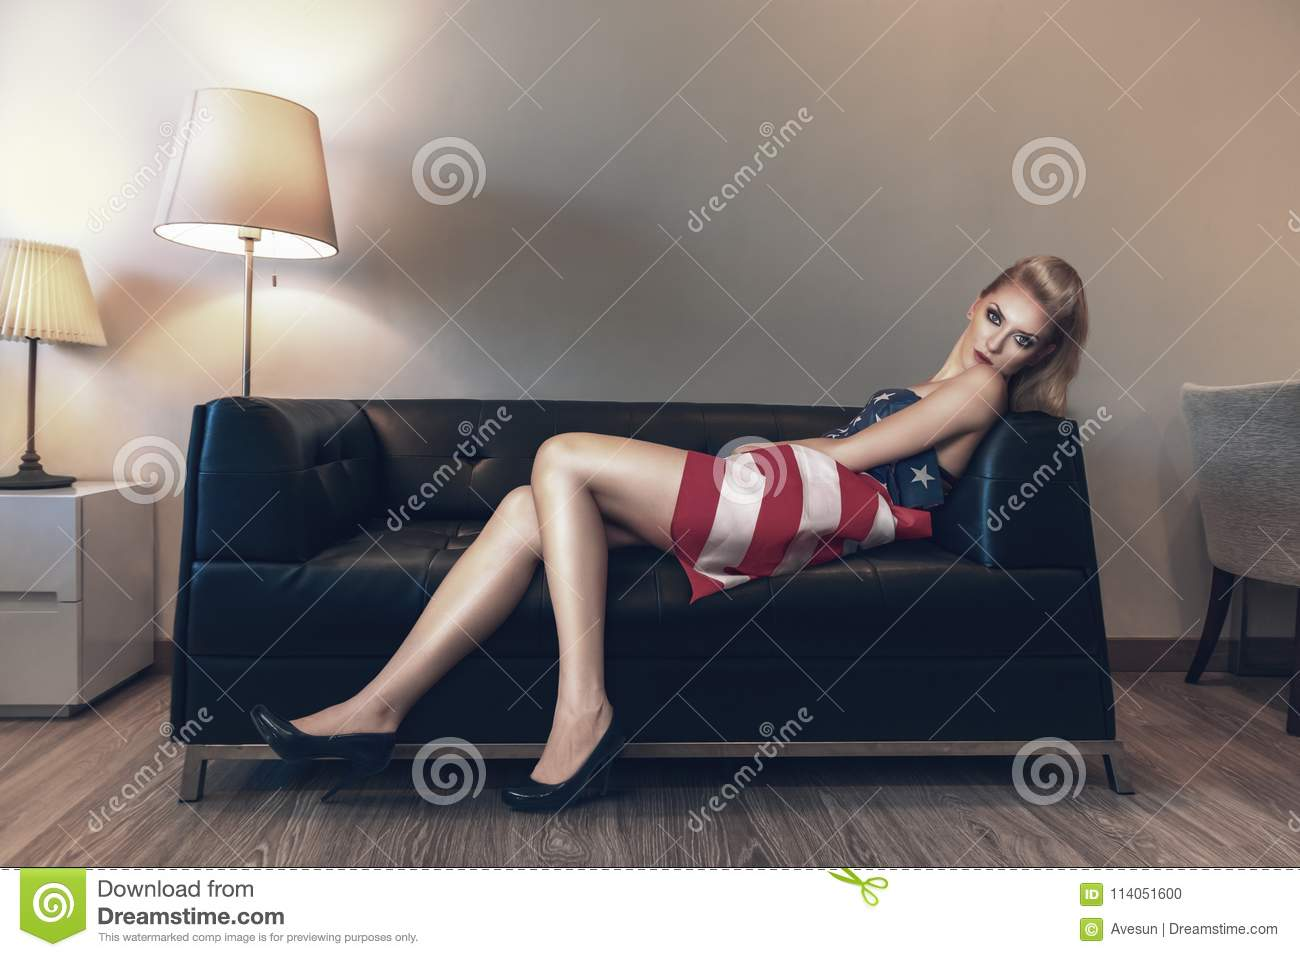 Laying down on the couch